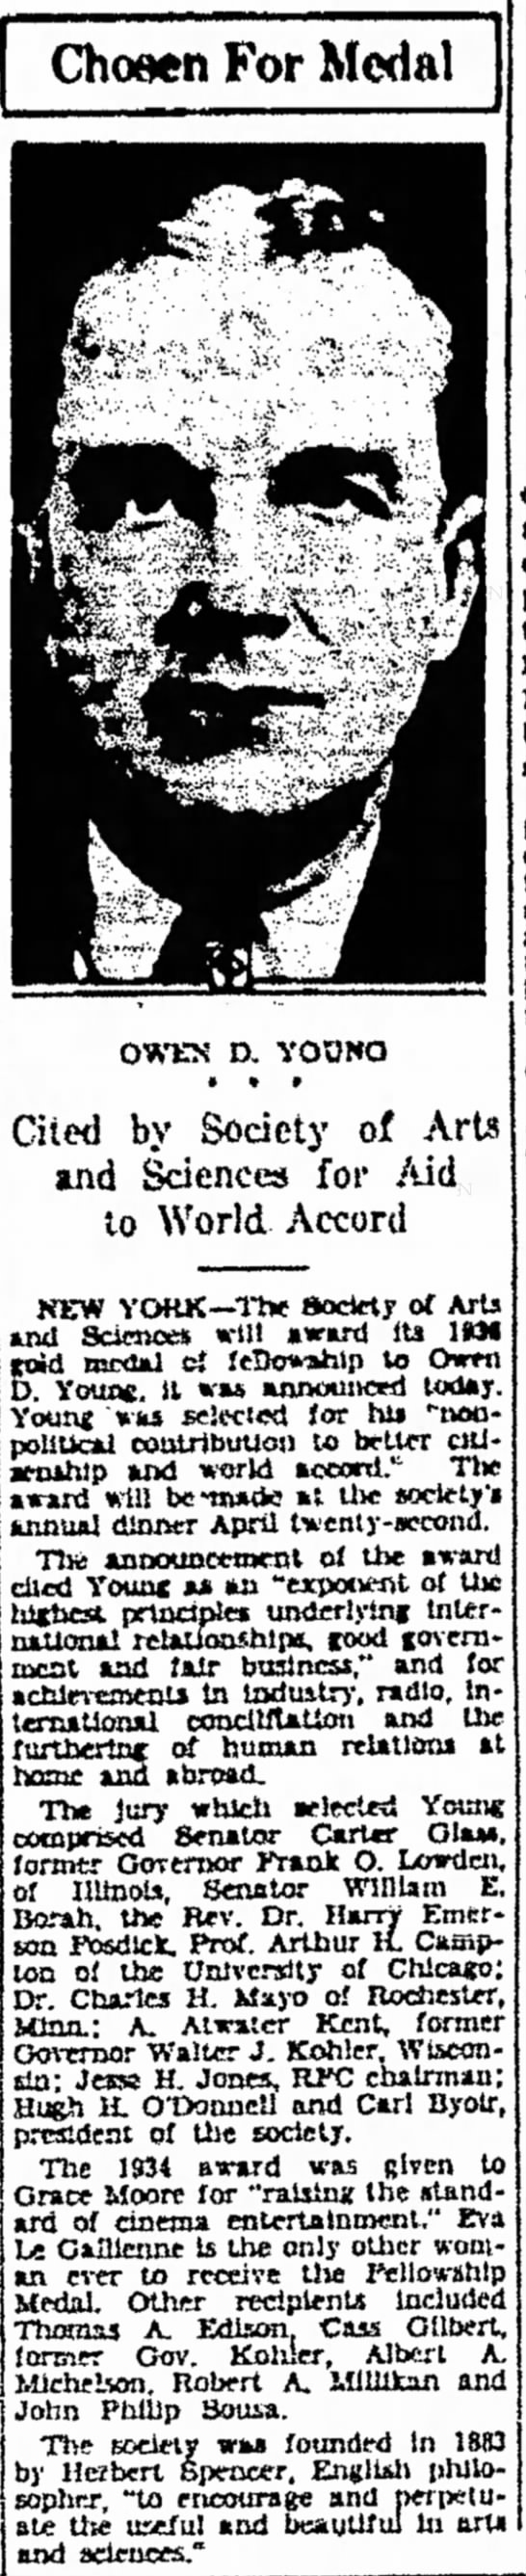 Middletown Times Herald (Middletown, New York) 17 March 1936  Page 7 -